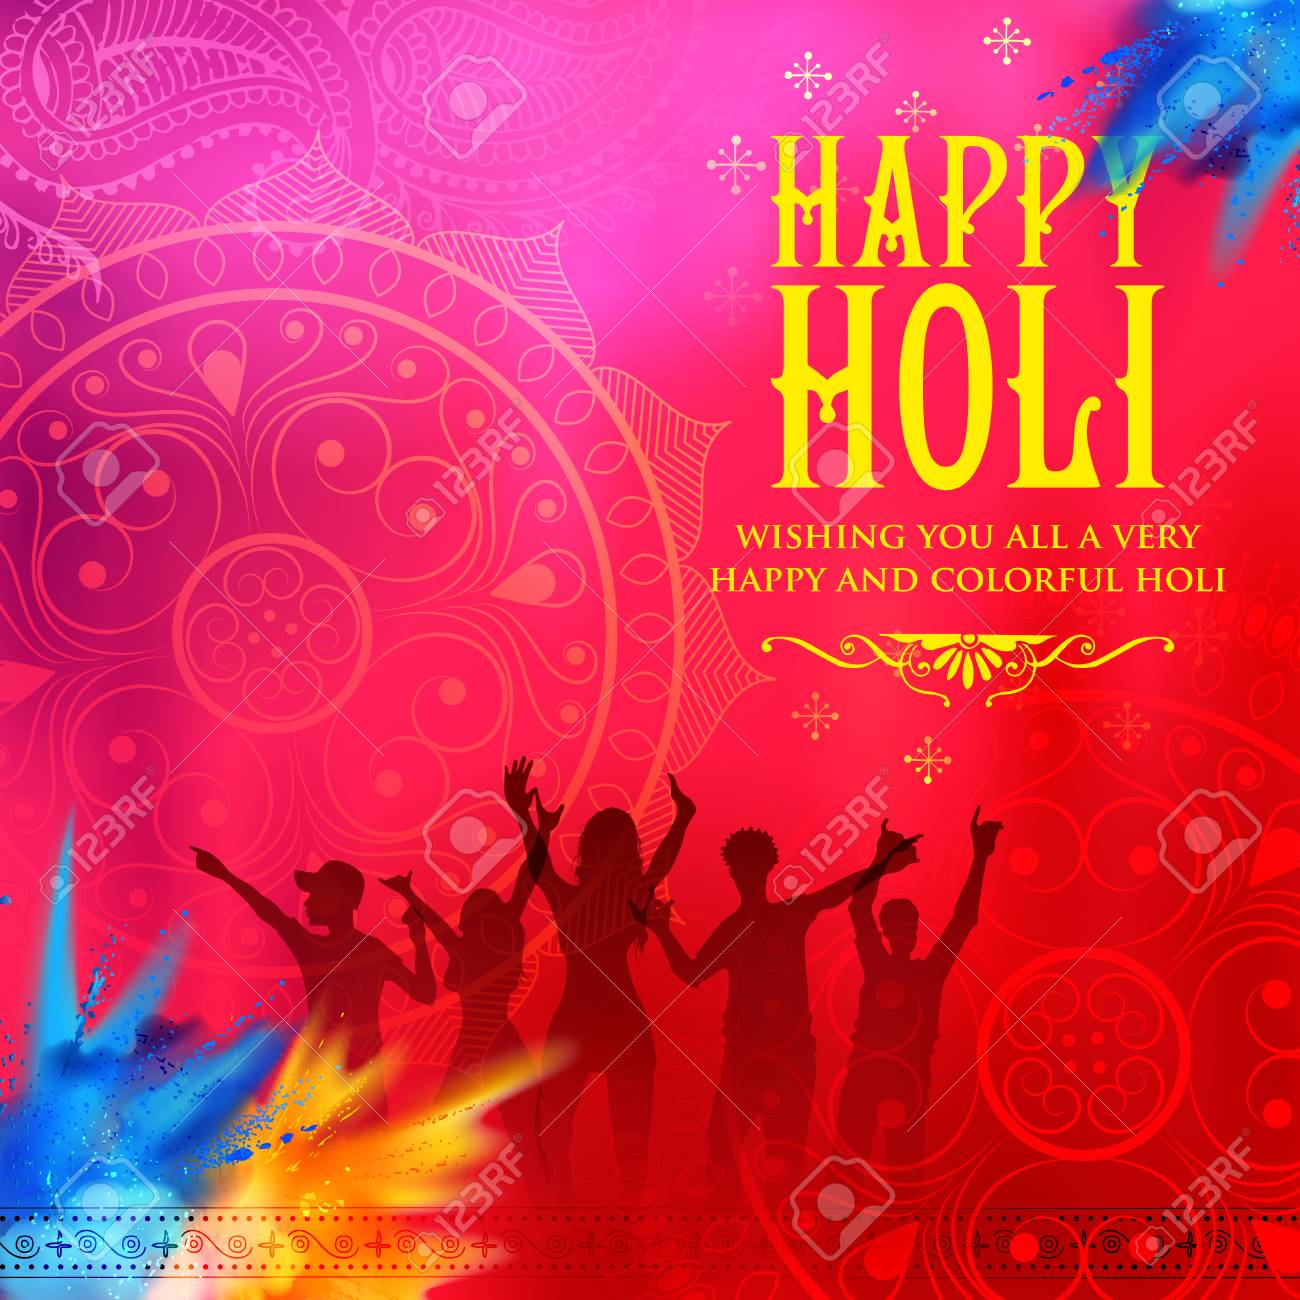 Happy holi background for festival of colors celebration greetings happy holi background for festival of colors celebration greetings stock vector 95883771 kristyandbryce Image collections